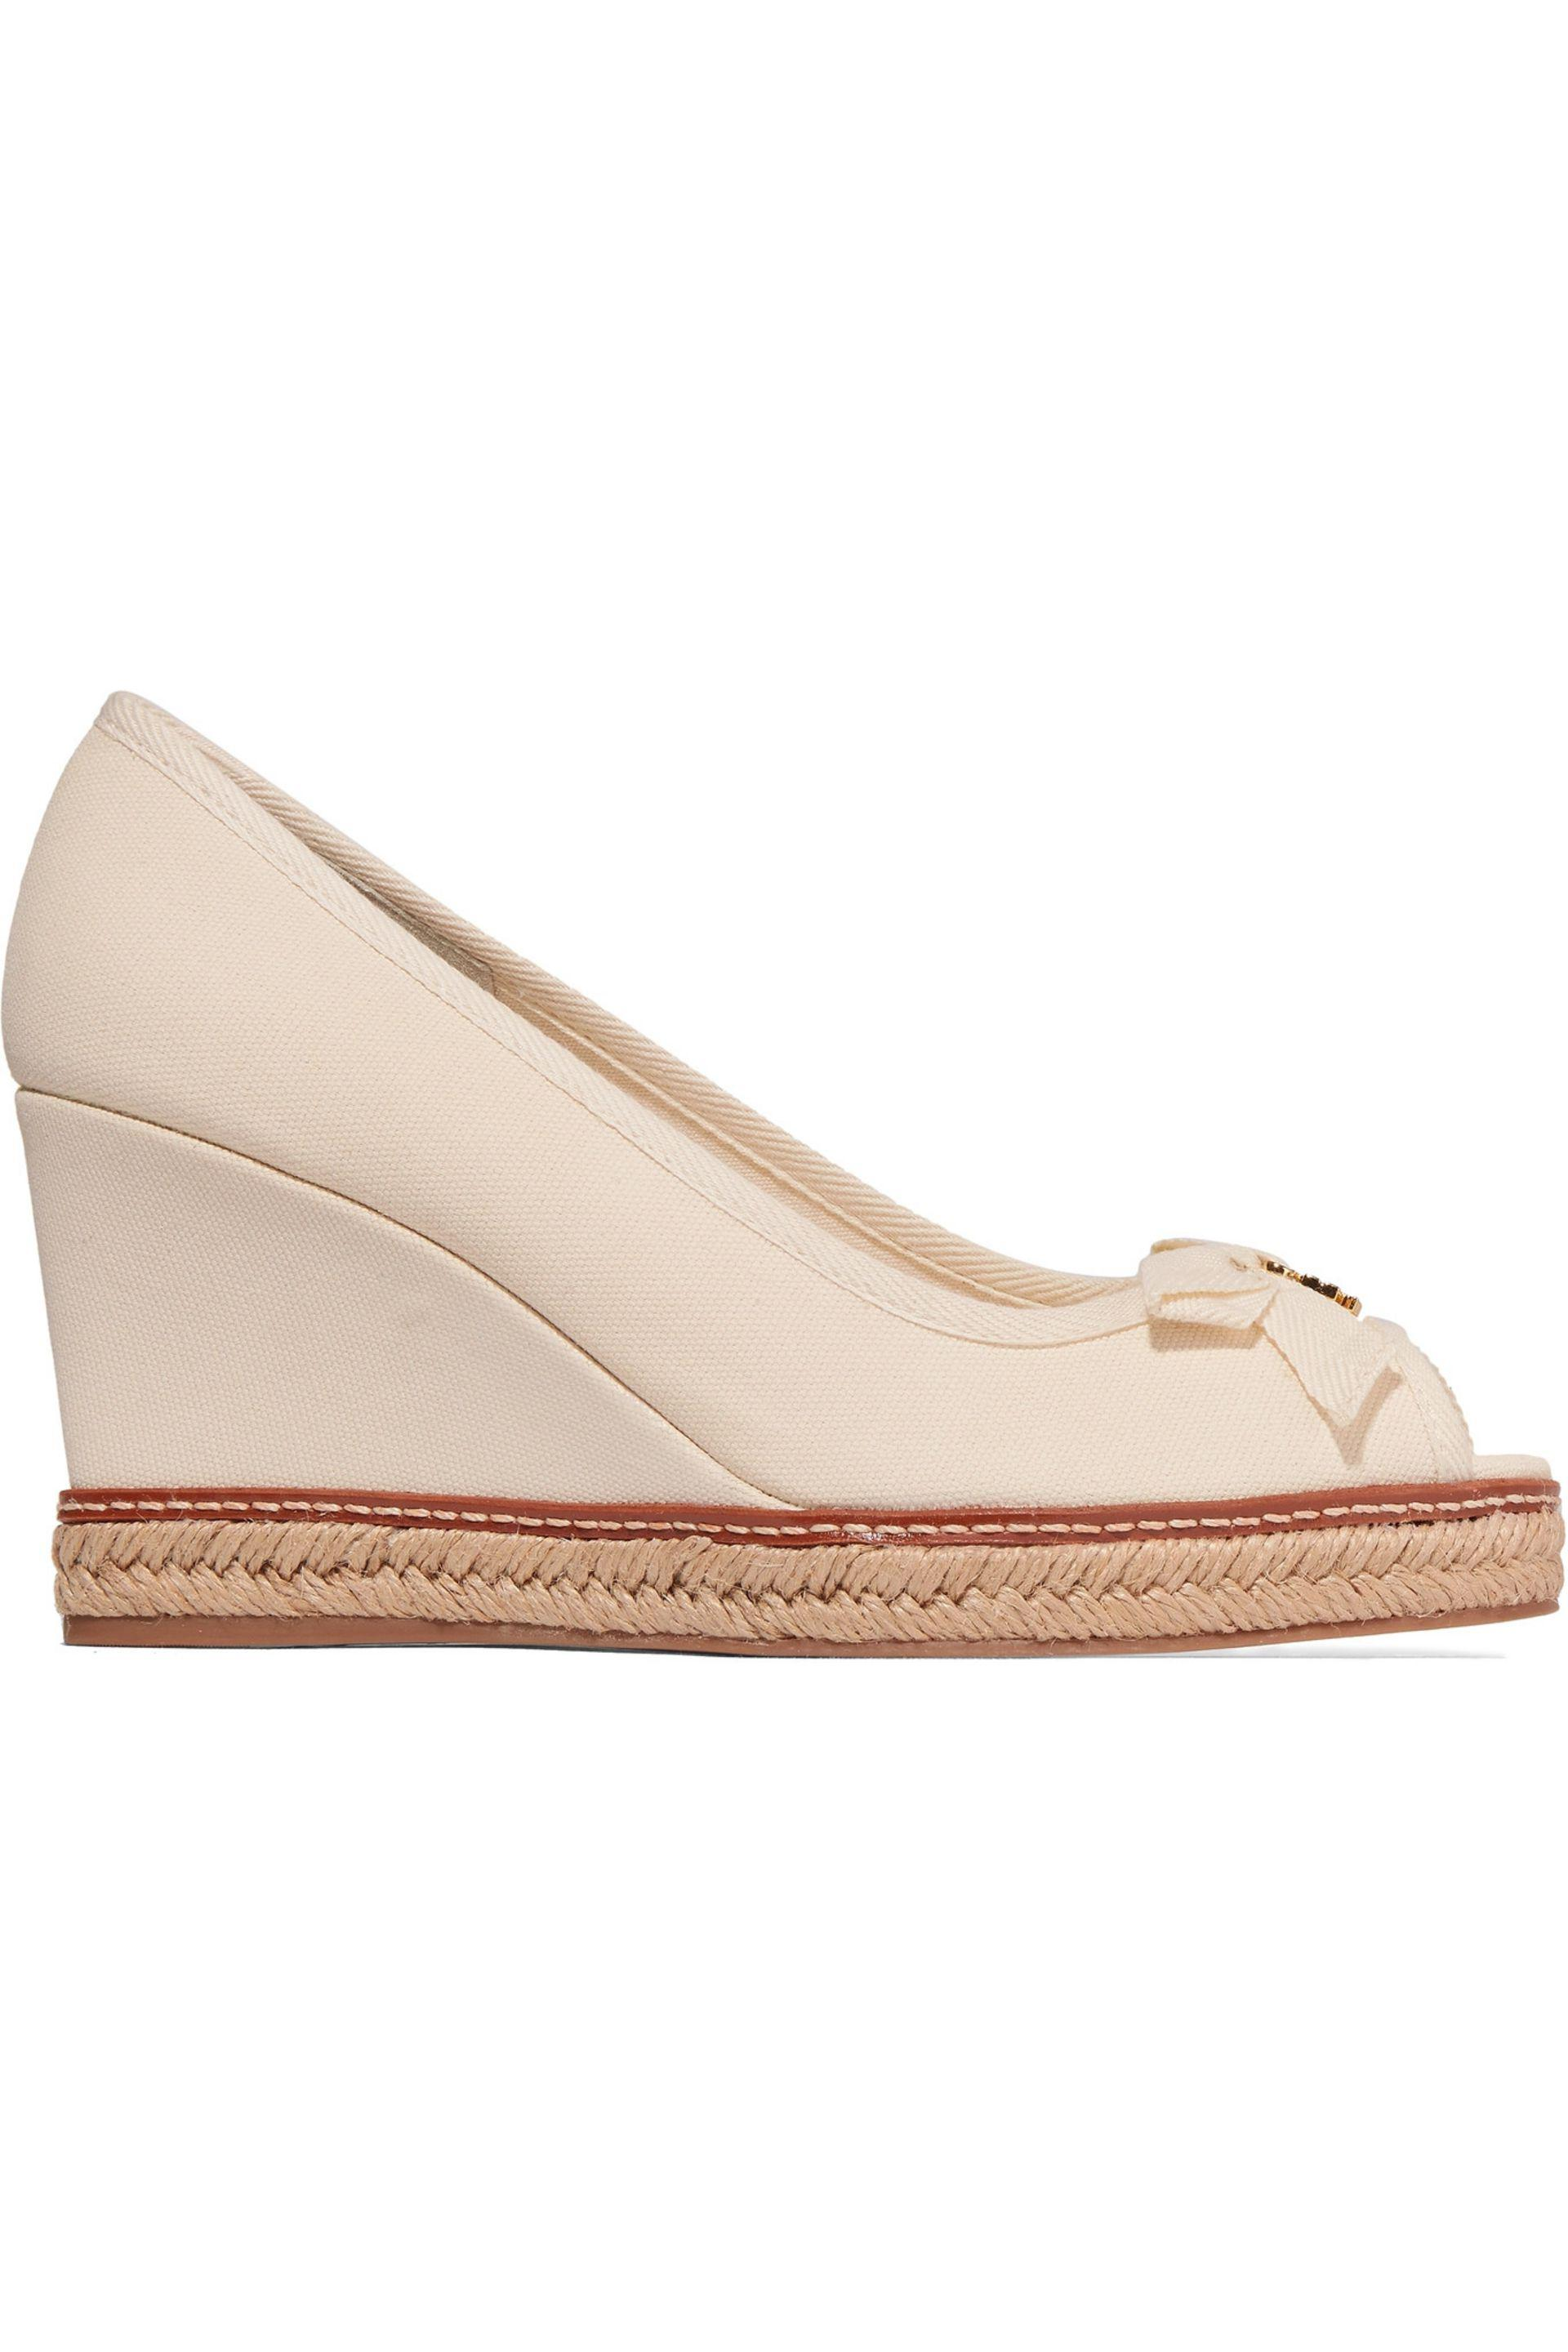 bd758297c8d Tory Burch Jackie Canvas Wedge Sandals in White - Lyst